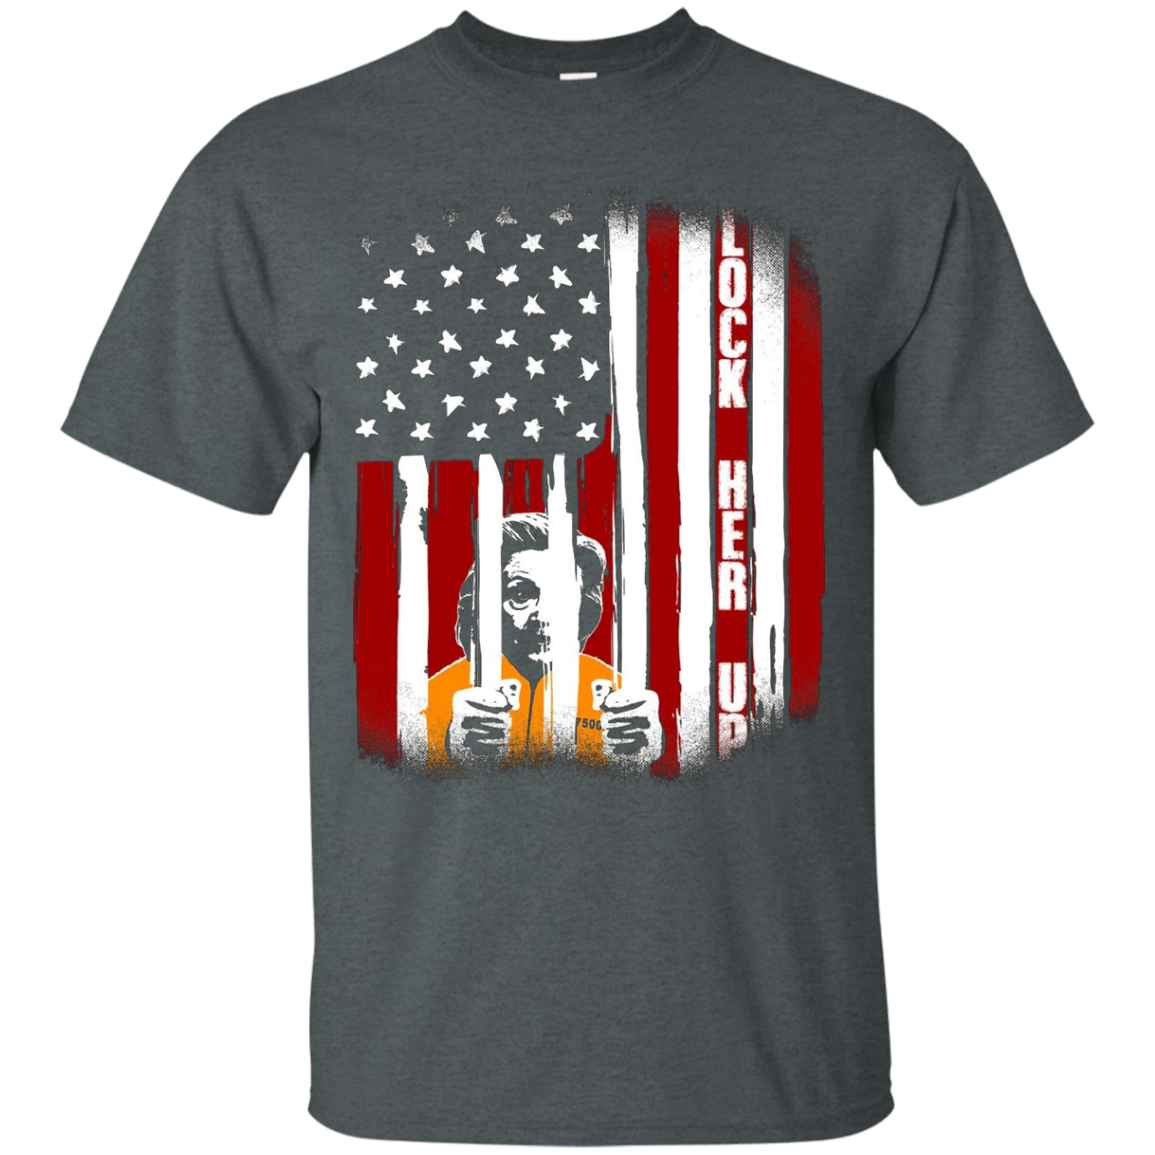 LOCK HER UP Hillary Clinton Political Graphic T-shirt